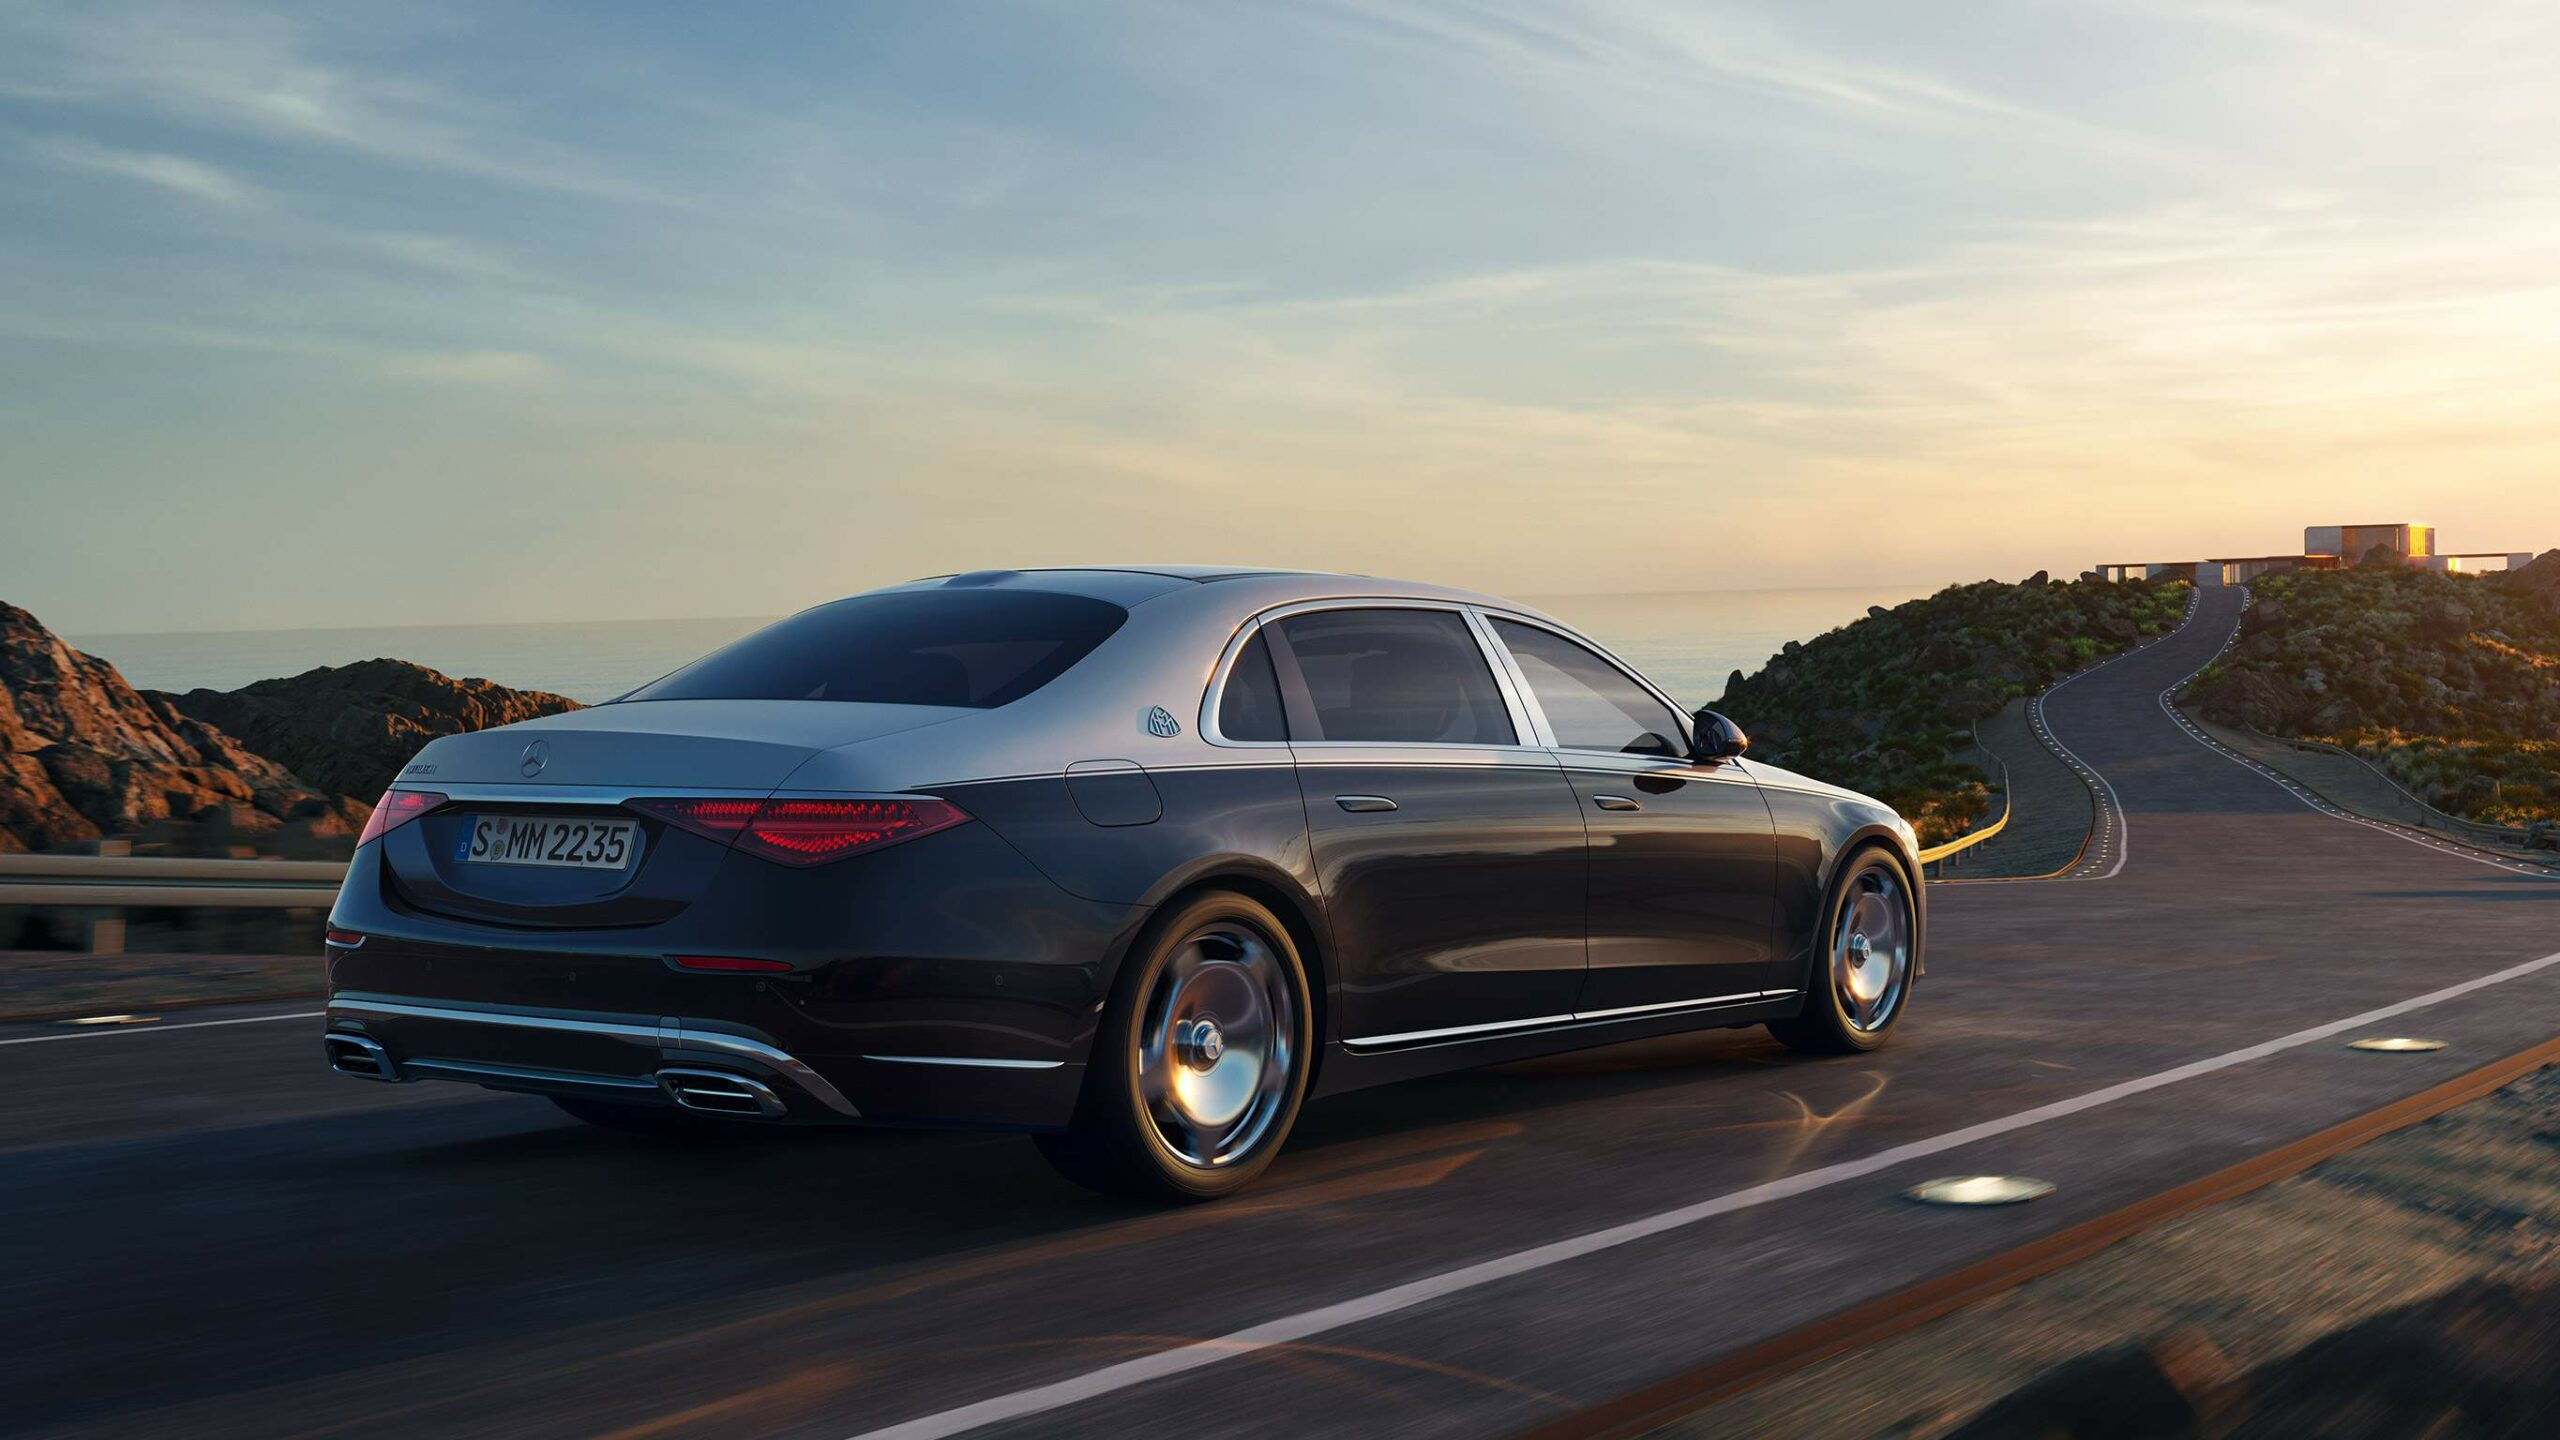 Mercedes-Classe-S-Maybach-05